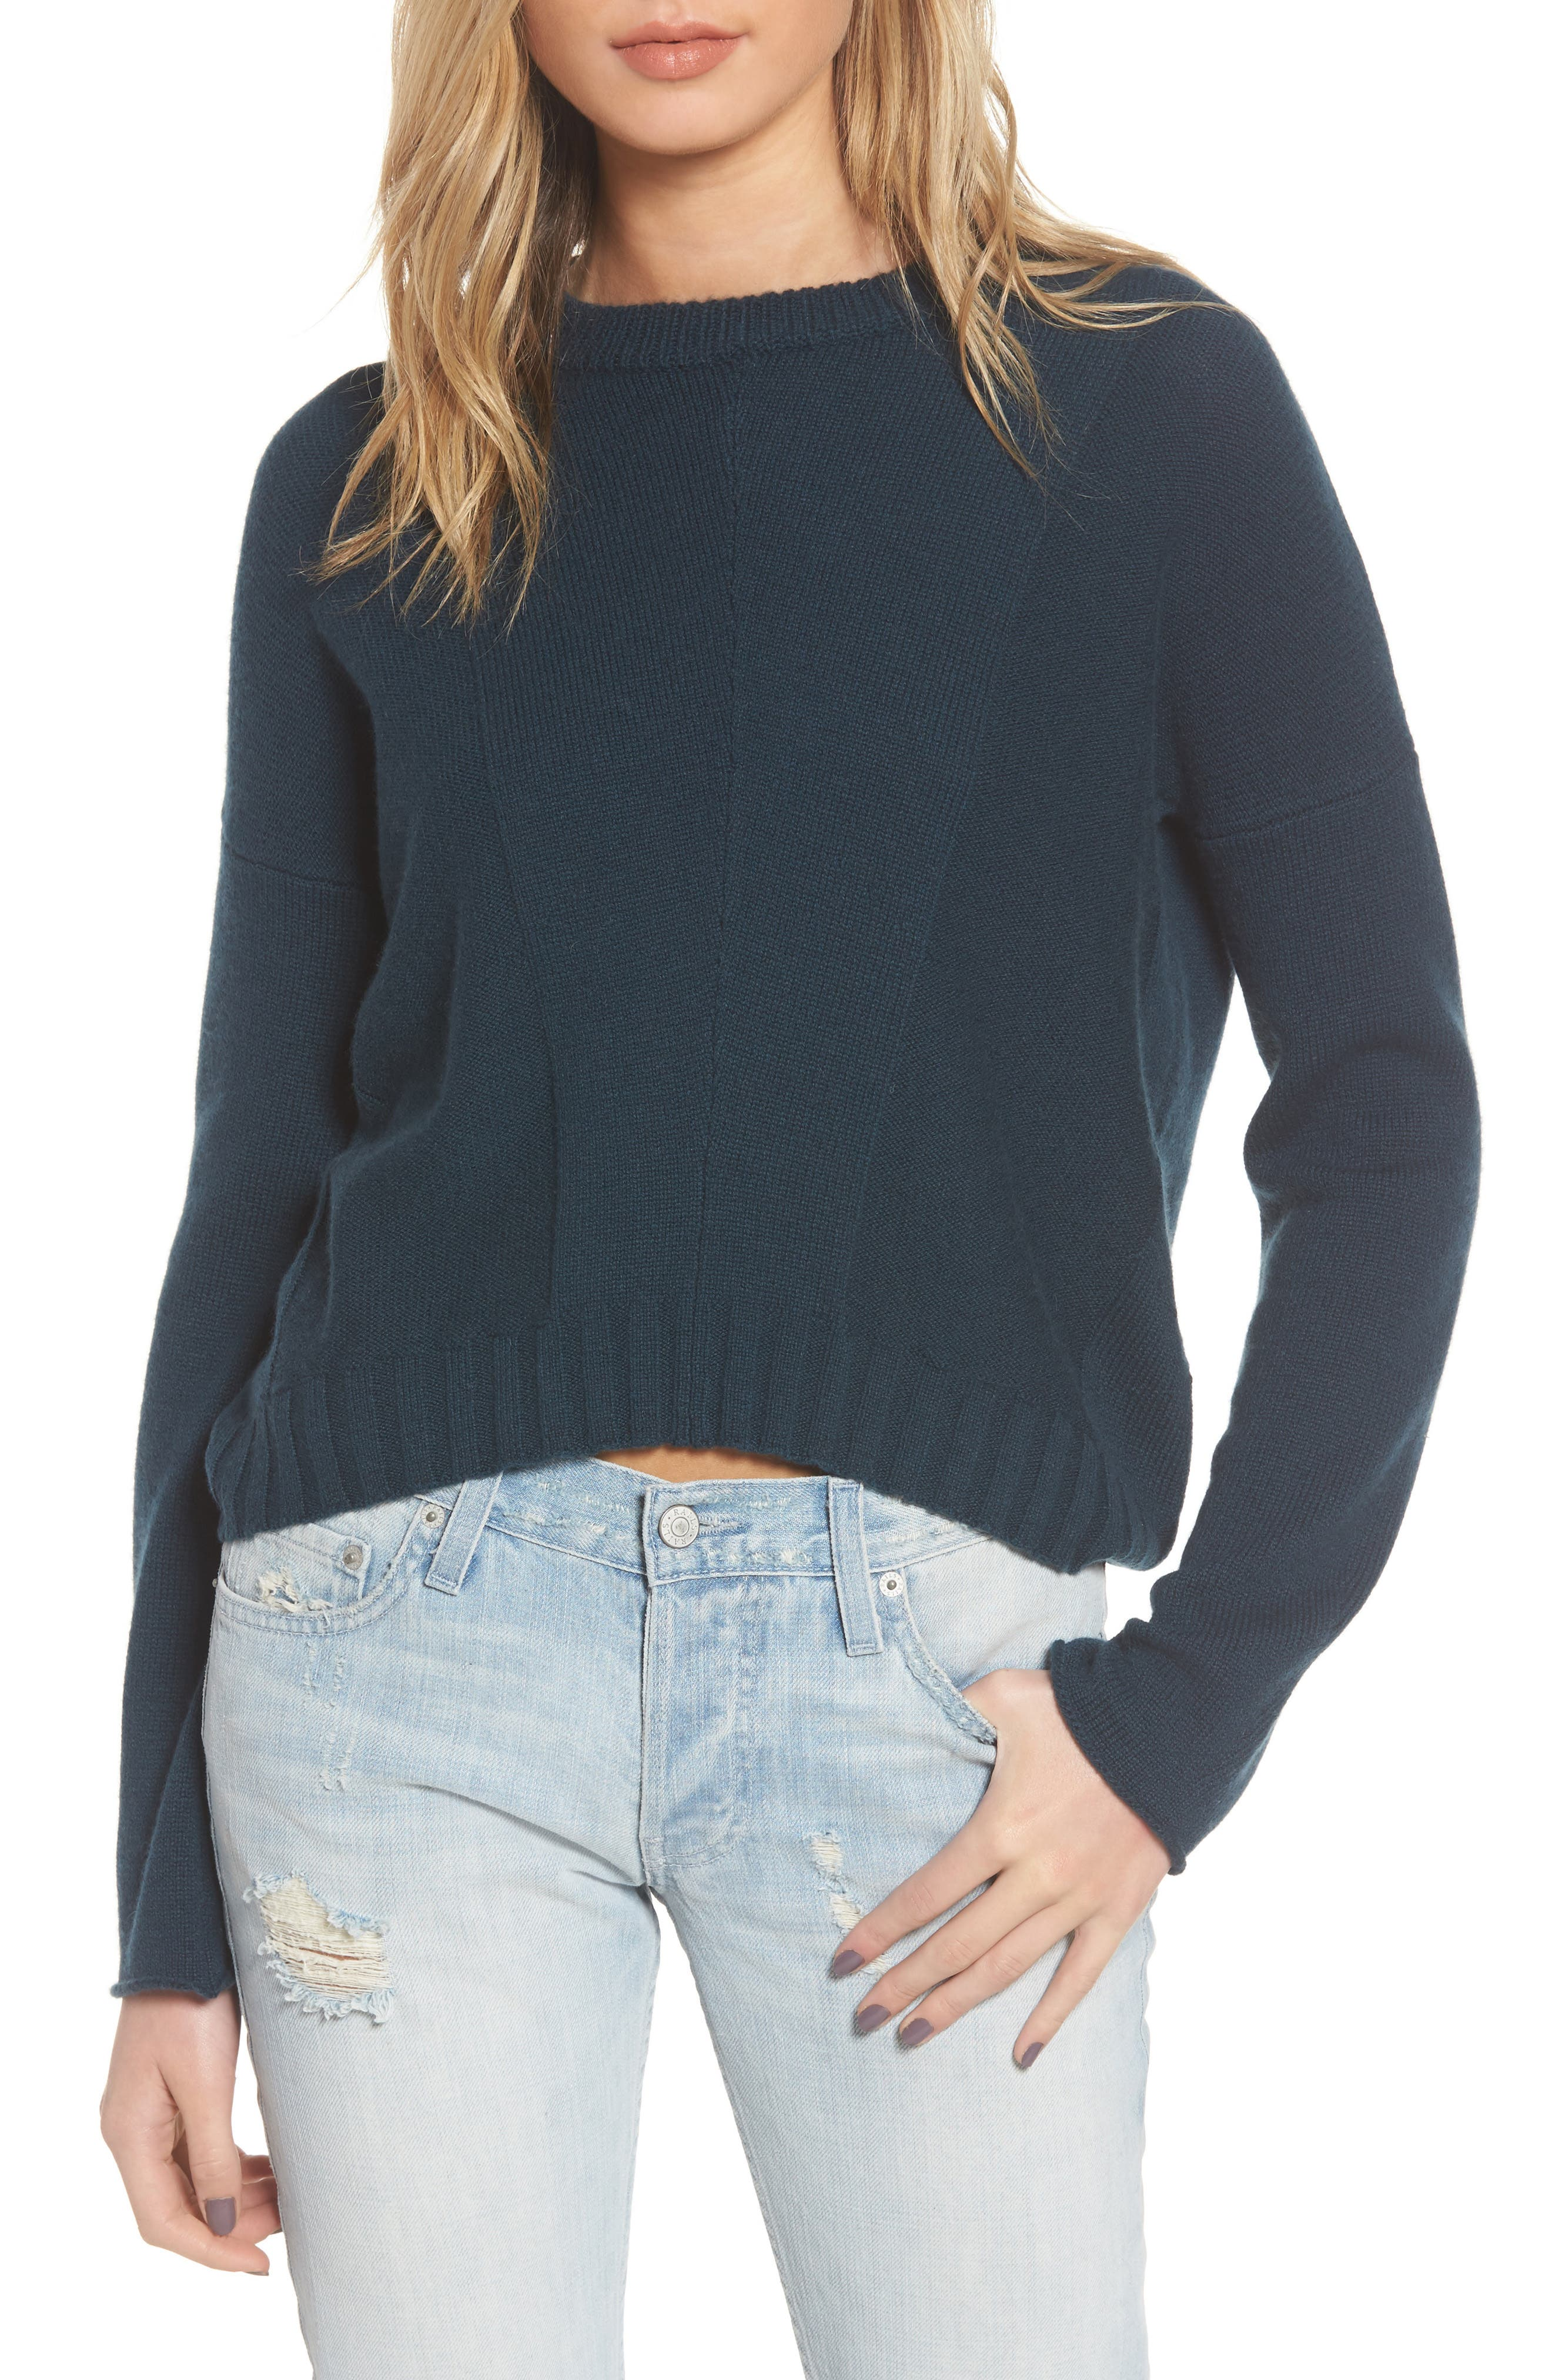 Joanna Wool & Cashmere Sweater,                             Main thumbnail 1, color,                             304